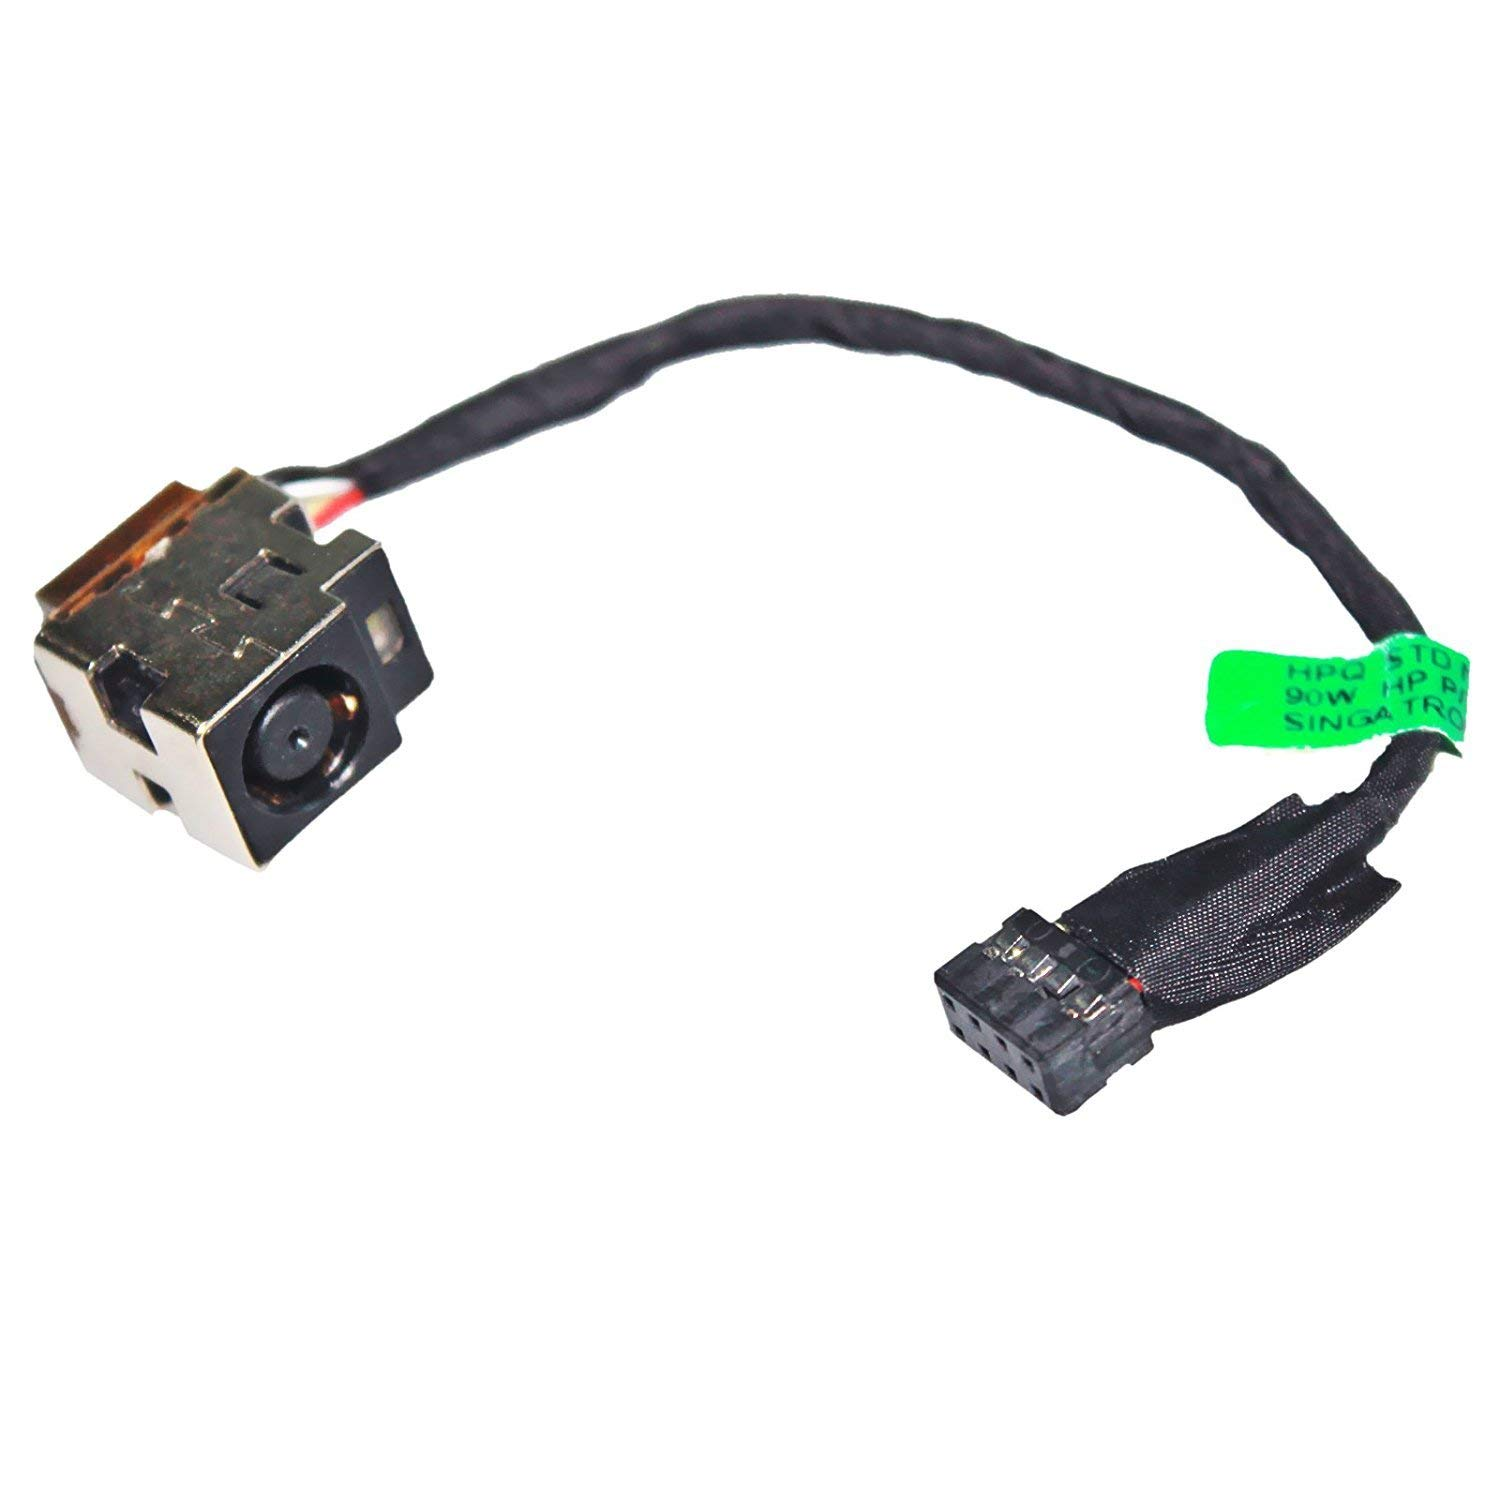 New AC DC Power Jack Plug Socket Cable Harness Compatible HP 2000-2c07ca 2000-2c10dx 2000-2c11nr 2000-2c10nr 2000-2c12nr 2000-2c17cl 2000-2c20ca 2000-2c20nr